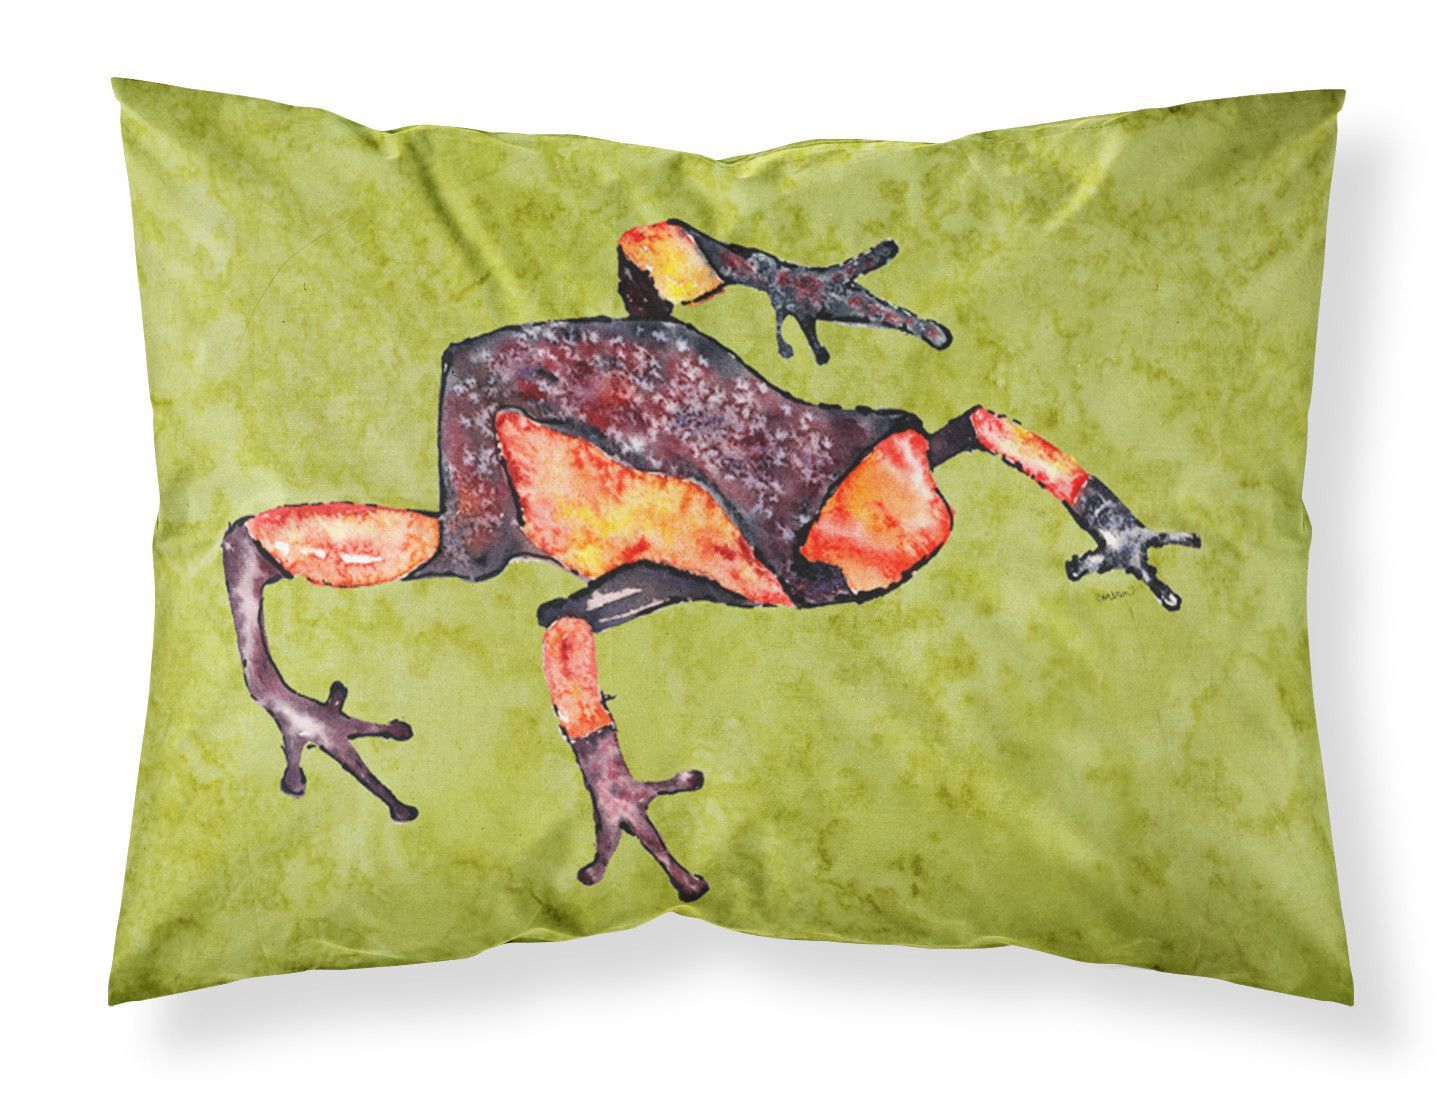 Frog Moisture wicking Fabric standard pillowcase | Products